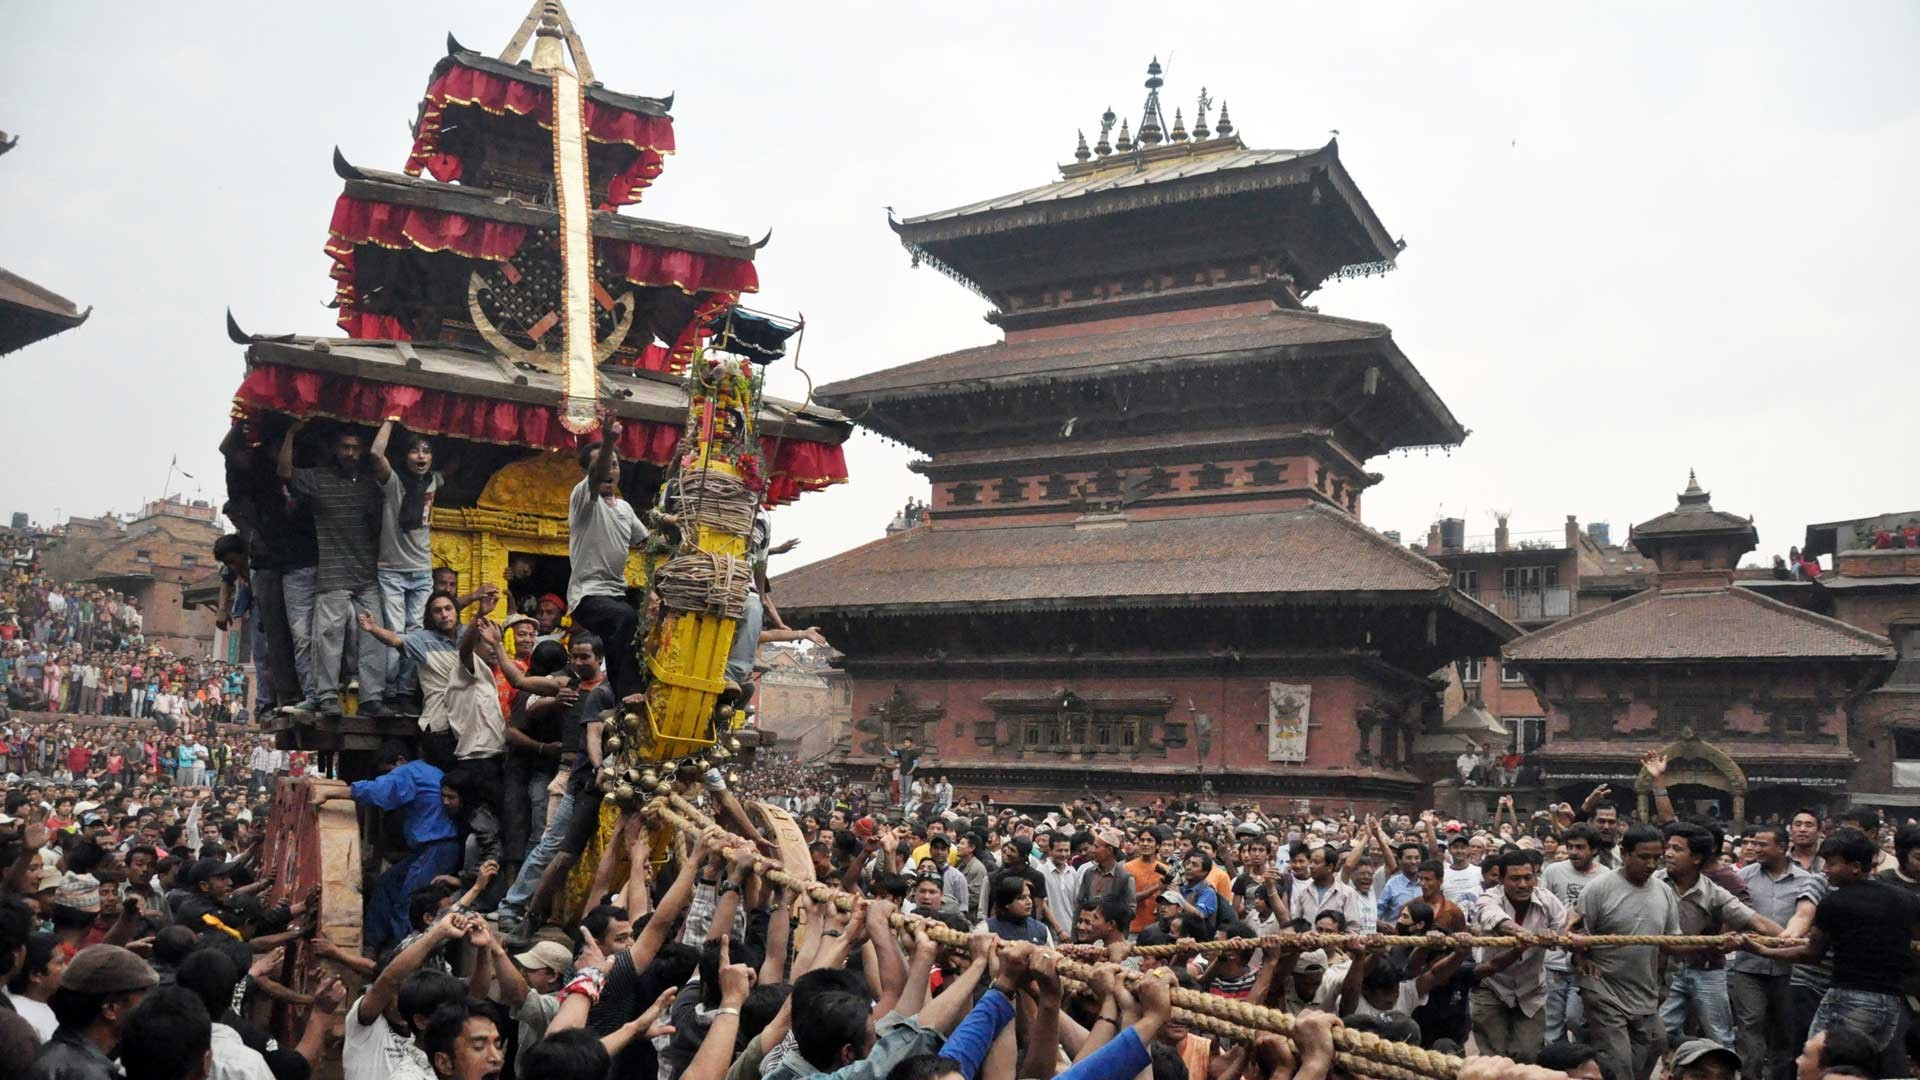 The Bisket Festival of Bhaktapur: Bhairava and Tantricism